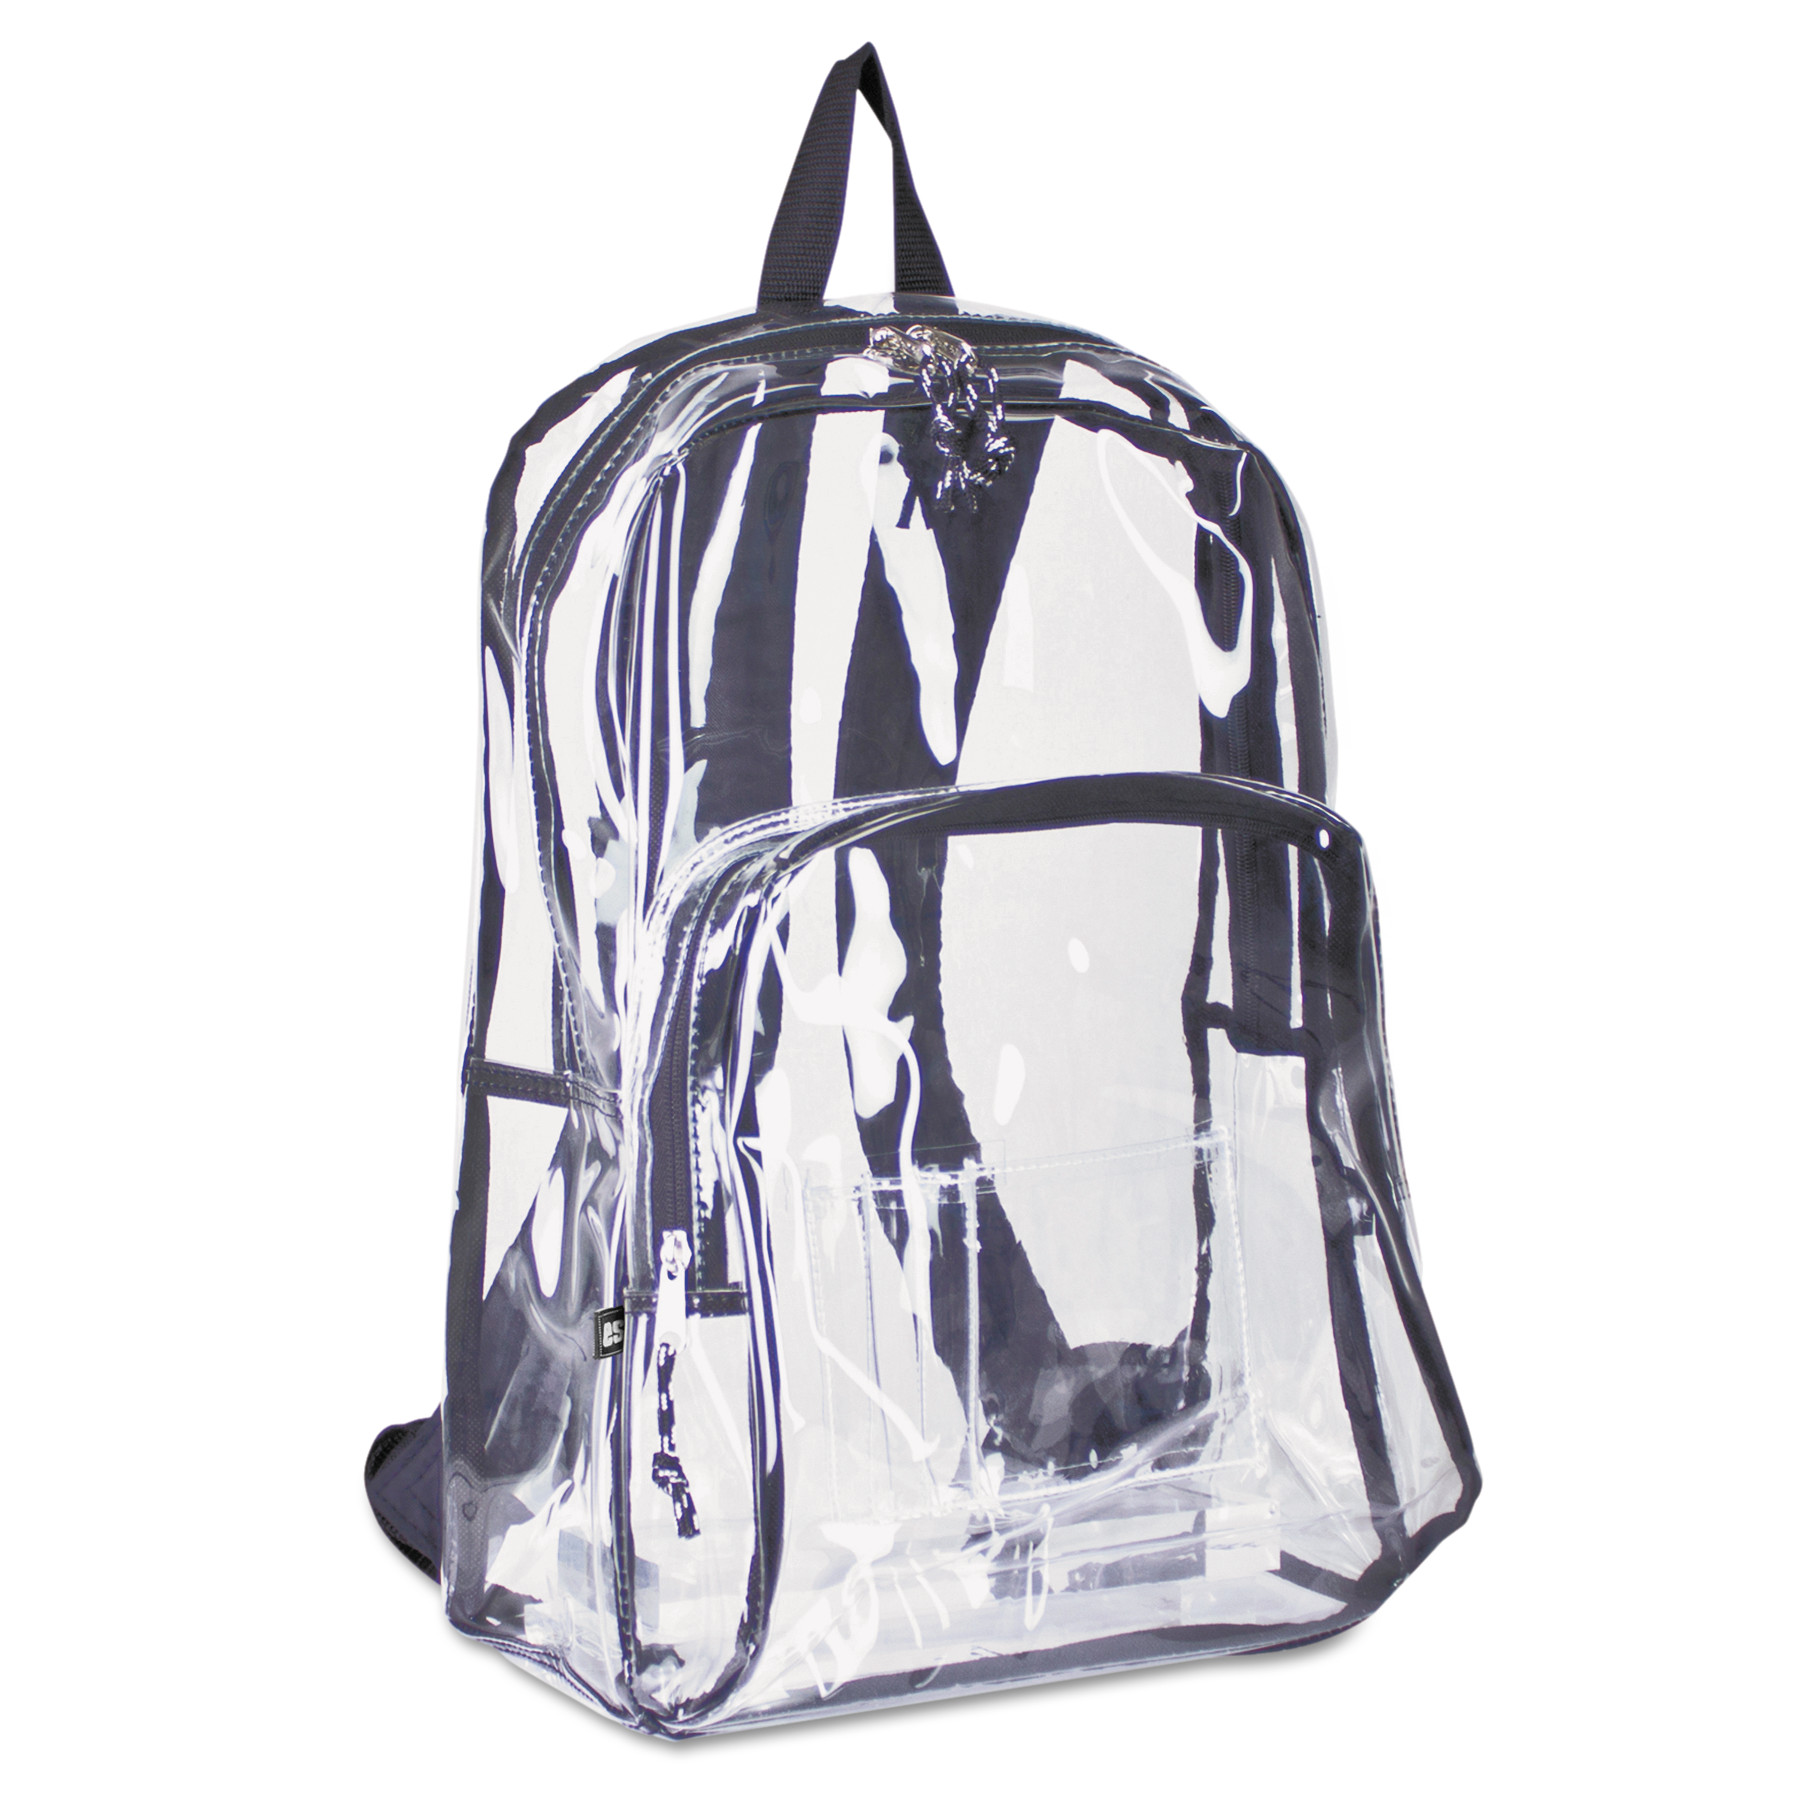 Eastsport Backpack, PVC Plastic, 12 1/2 x 5 1/2 x 17 1/2, Clear/Black